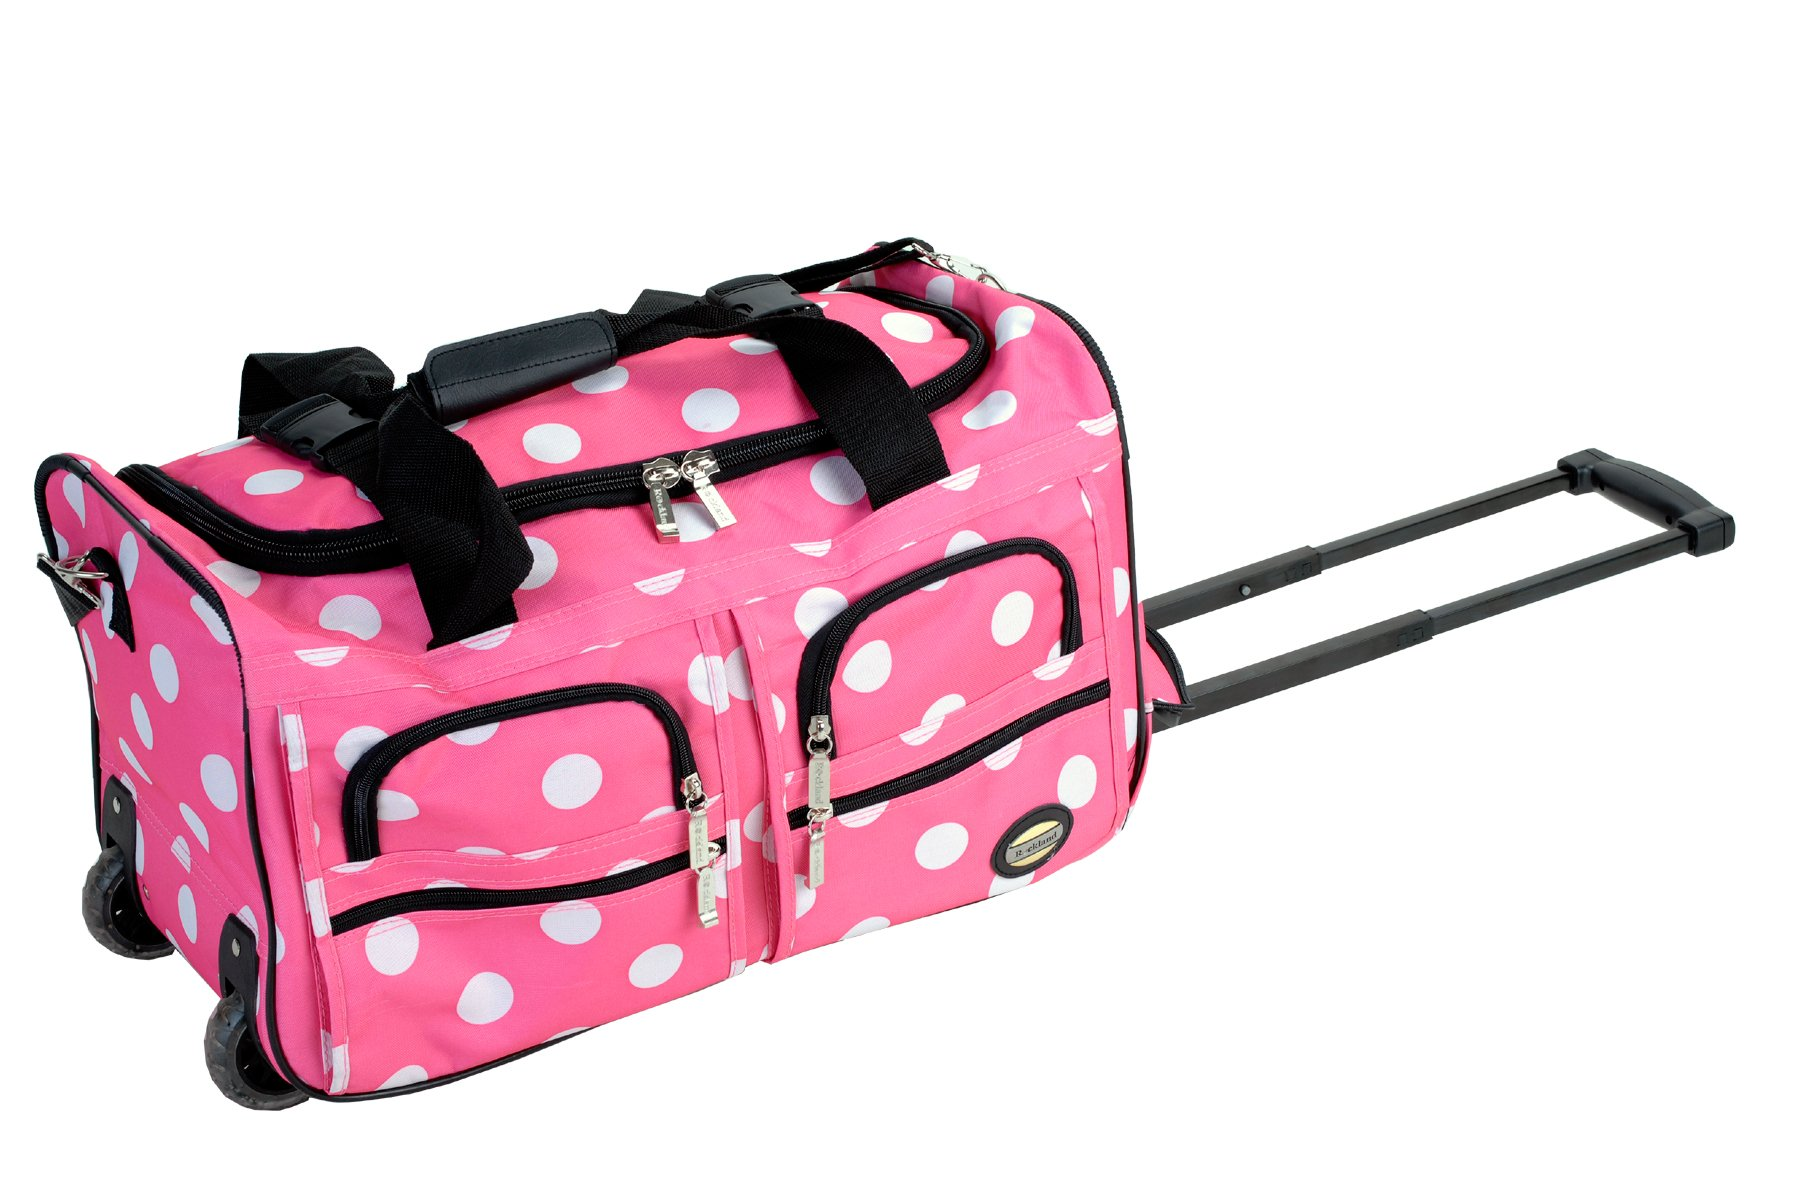 Rockland Luggage Rolling 22 Inch Duffle Bag, Pink Dot, One Size